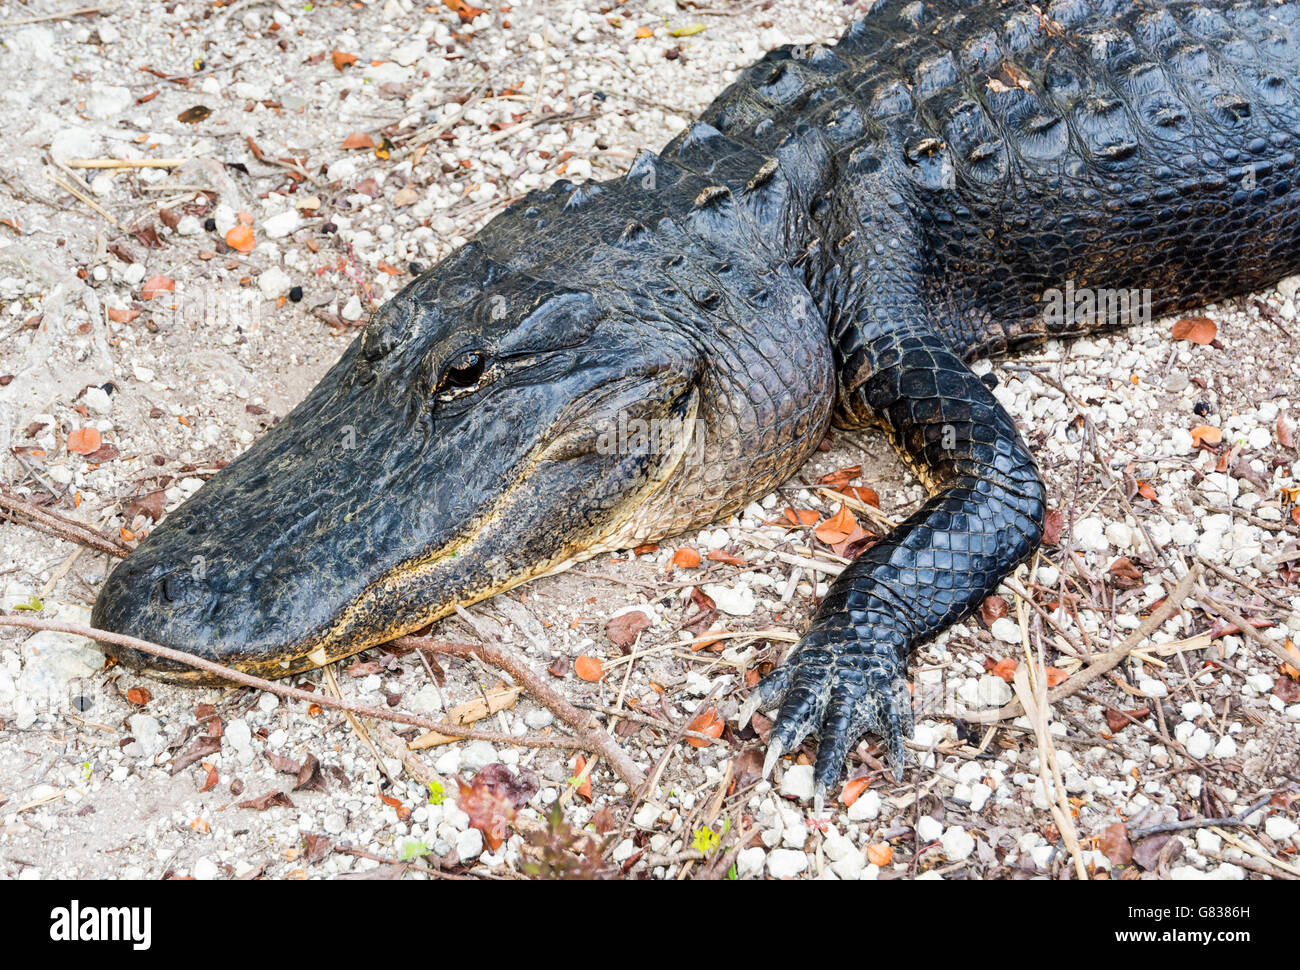 Florida, Everglades National Park, Anhinga Trail, view from boardwalk, American Alligator (Alligator mississippiensis) - Stock Image